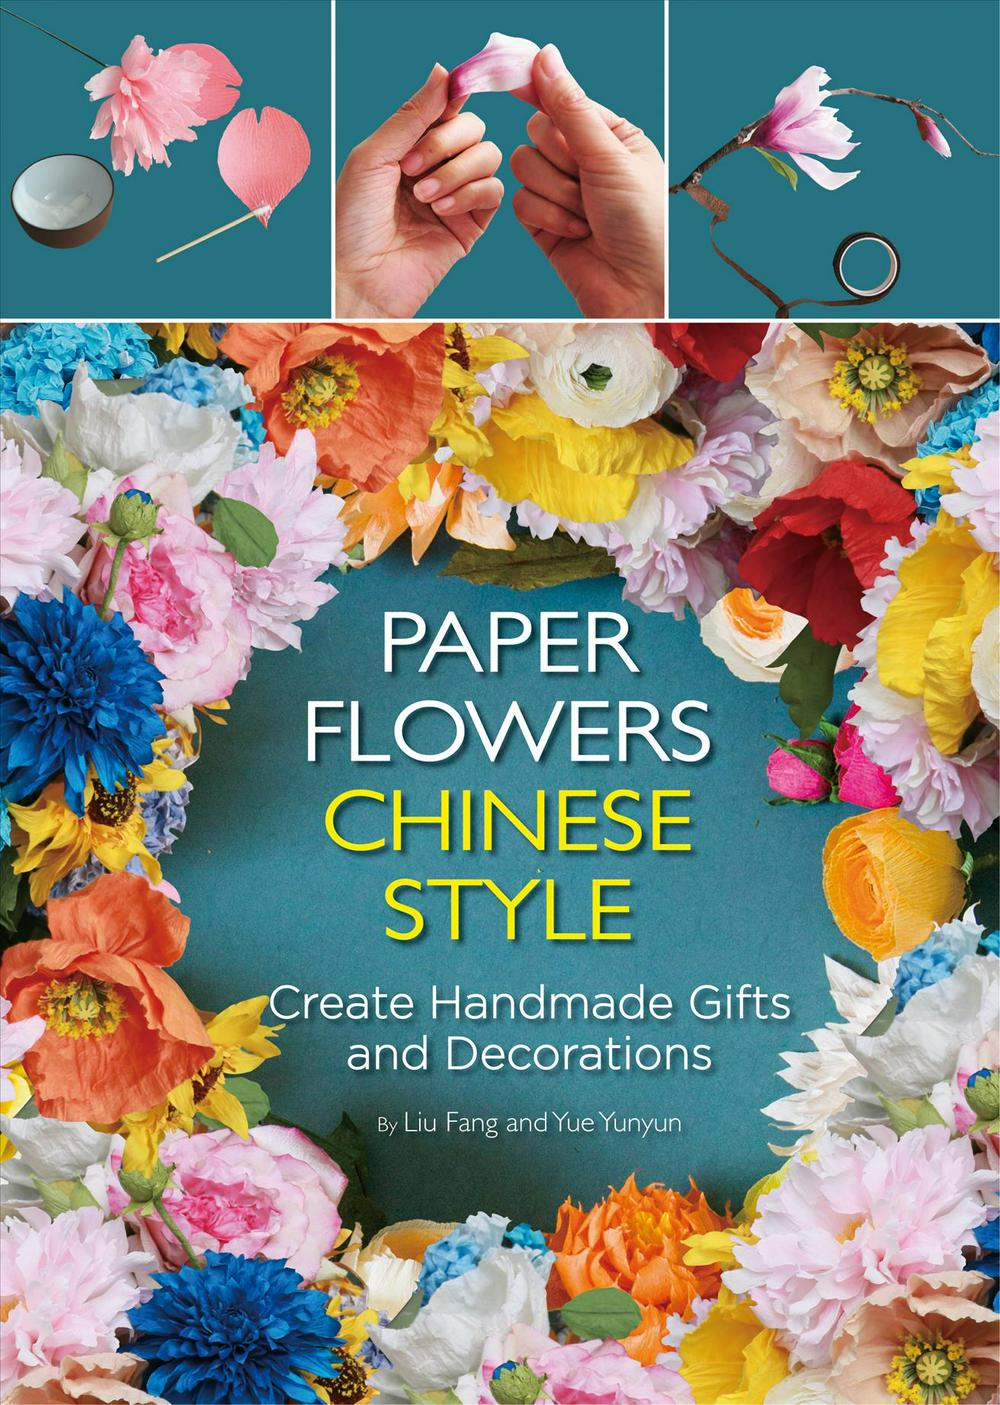 Paper Flowers Chinese Style: Create Handmade Gifts and Decorations by Liu Fang, ISBN: 9781602200302